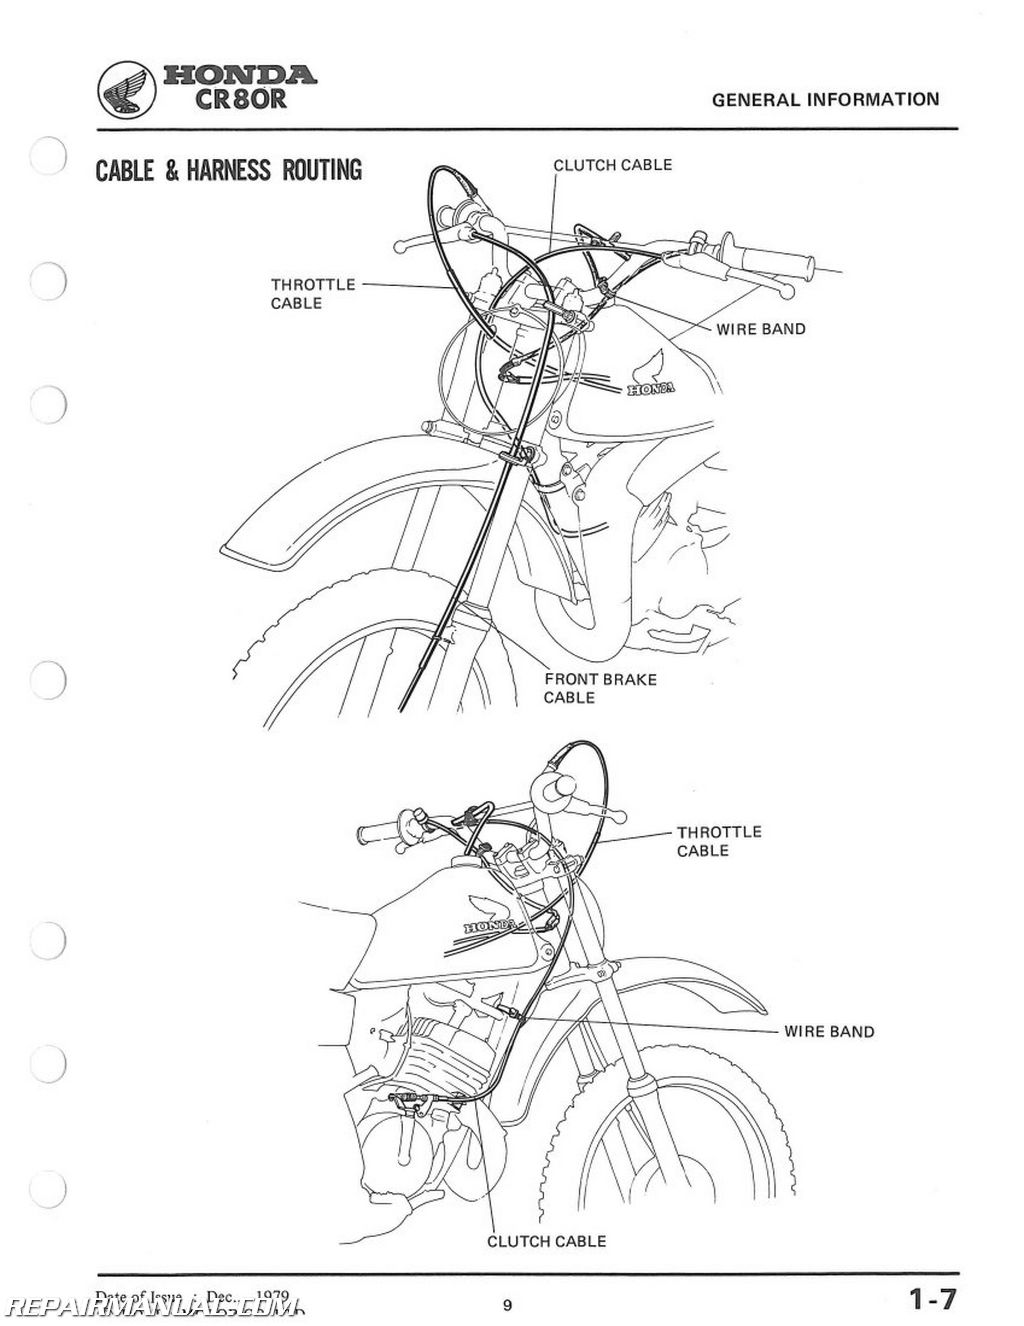 1980 1981 1982 honda cr80r motorcycle service manual